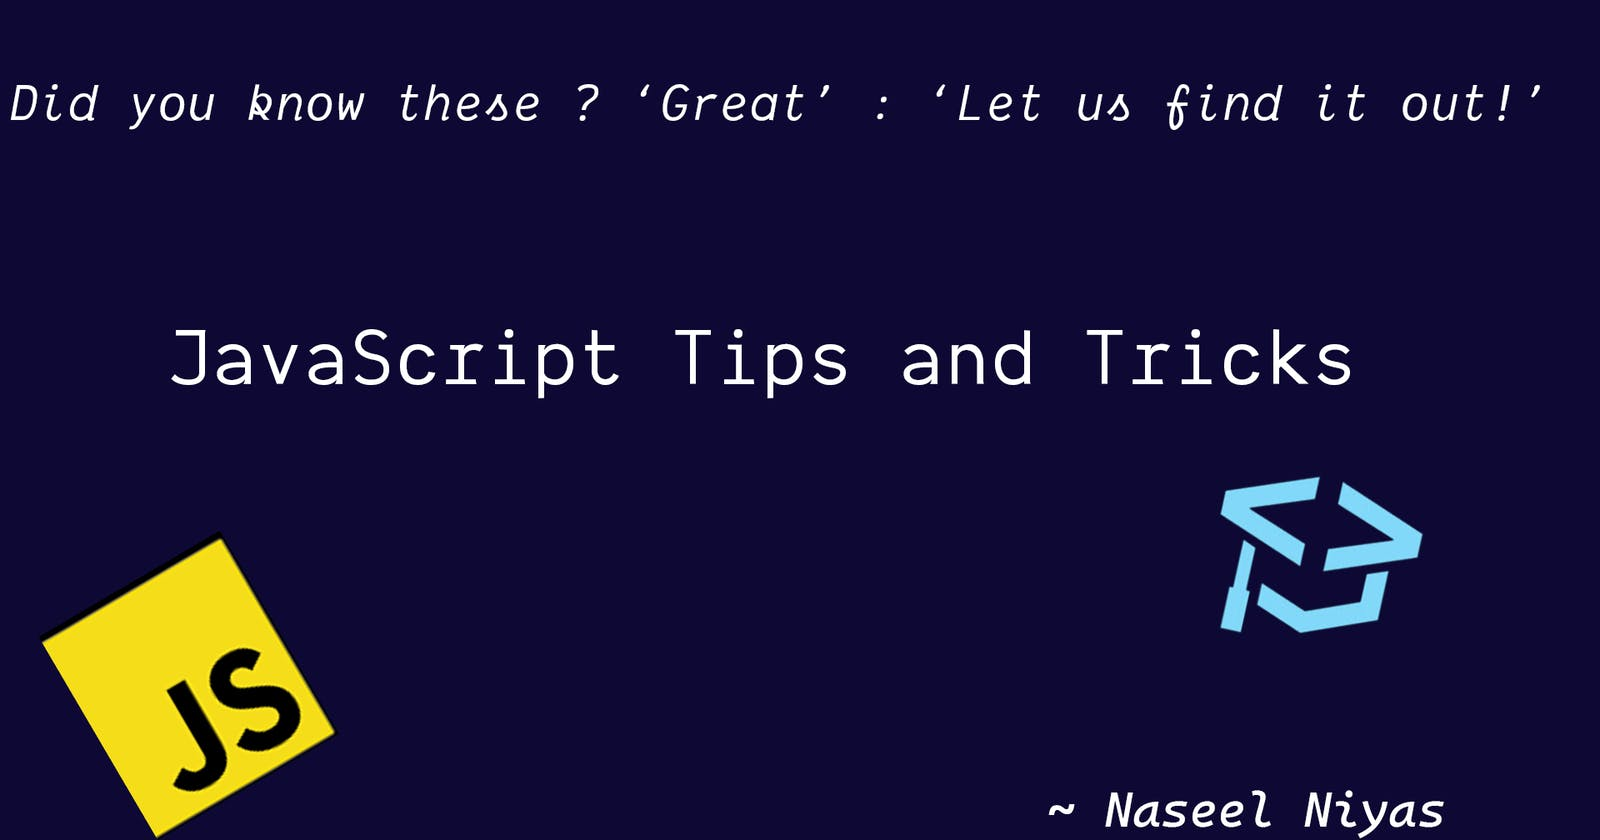 Stuff you might not know about JavaScript